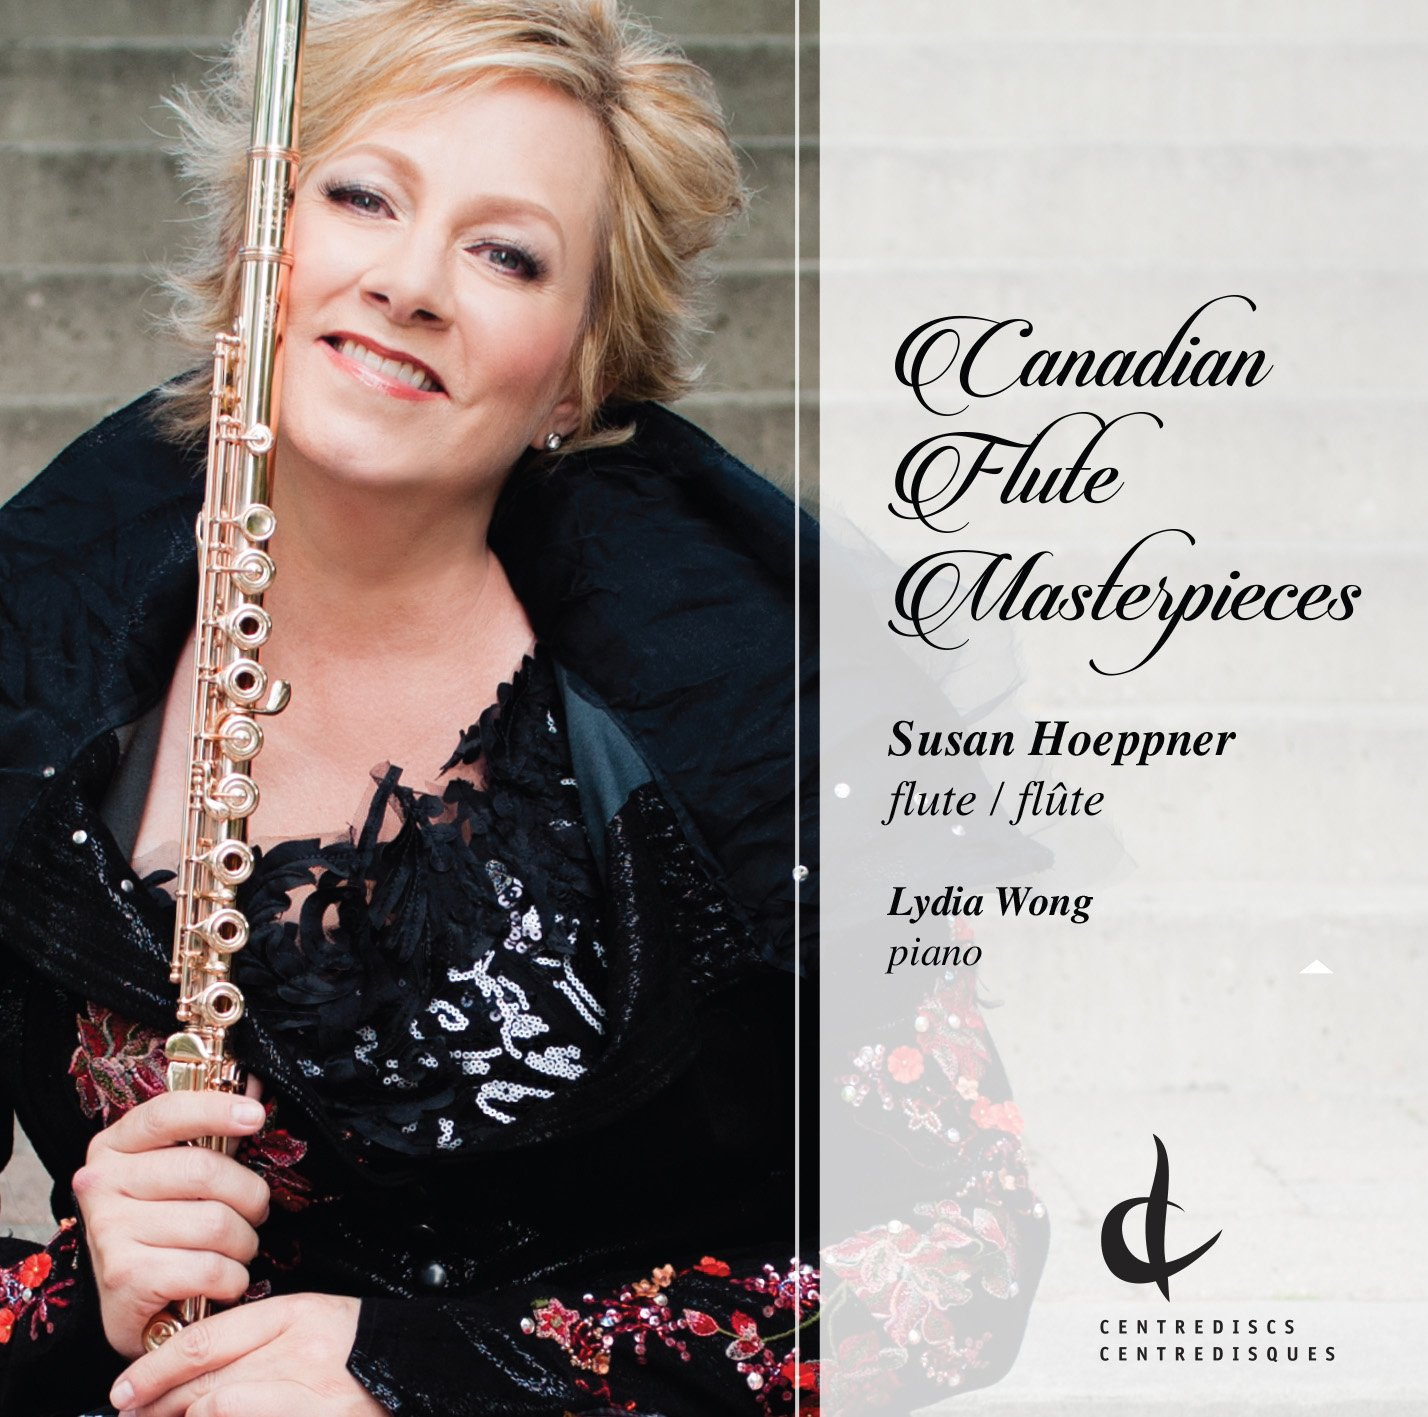 Canadian Flute Masterpieces by Susan Hoeppner